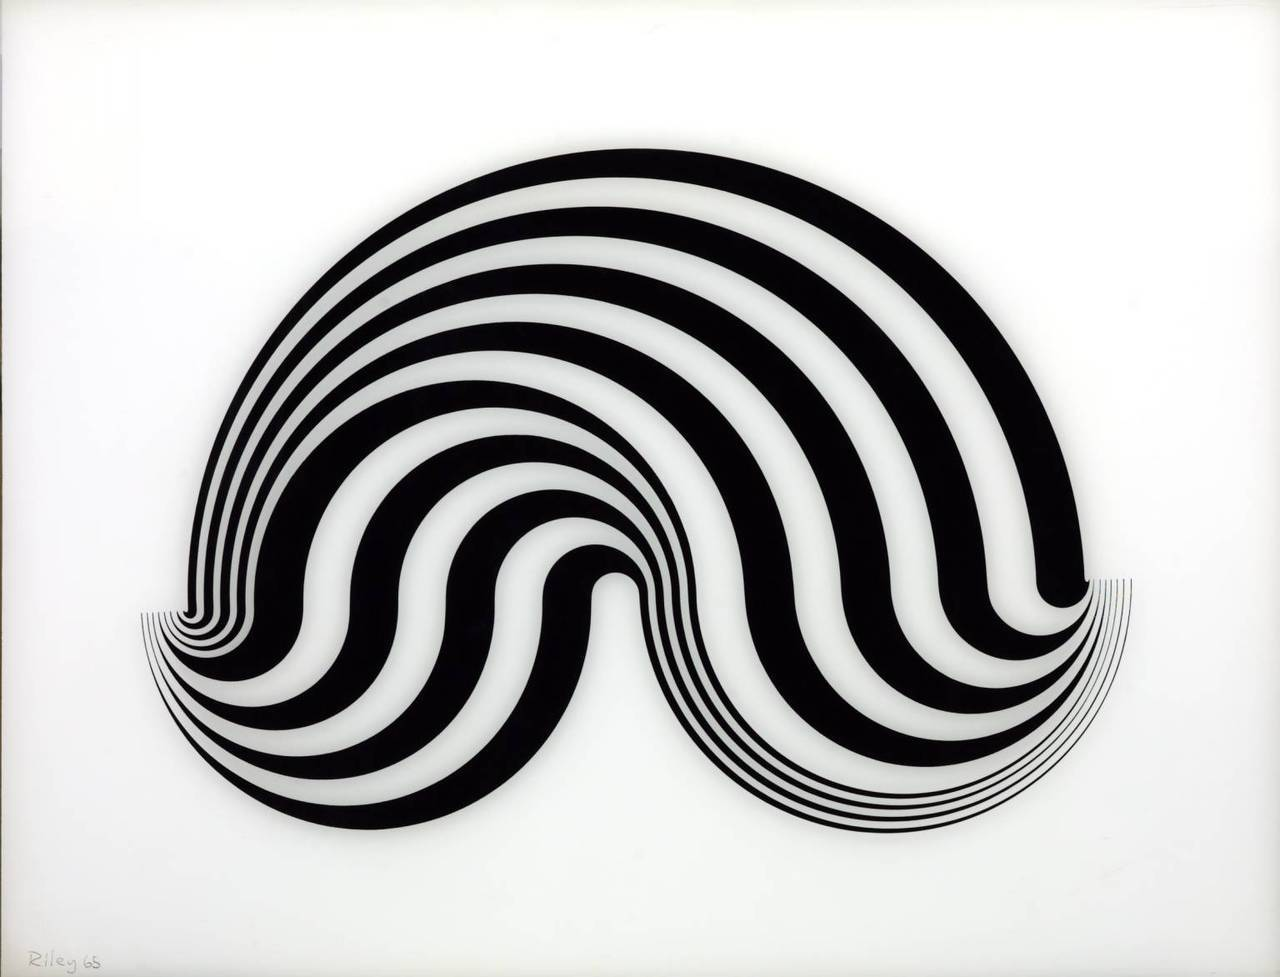 Bridget Riley - Fragment 5/8, 1965. Screenprint on perspex  Follow velcro: http://www.velcromag.com http://www.facebook.com/velcromag